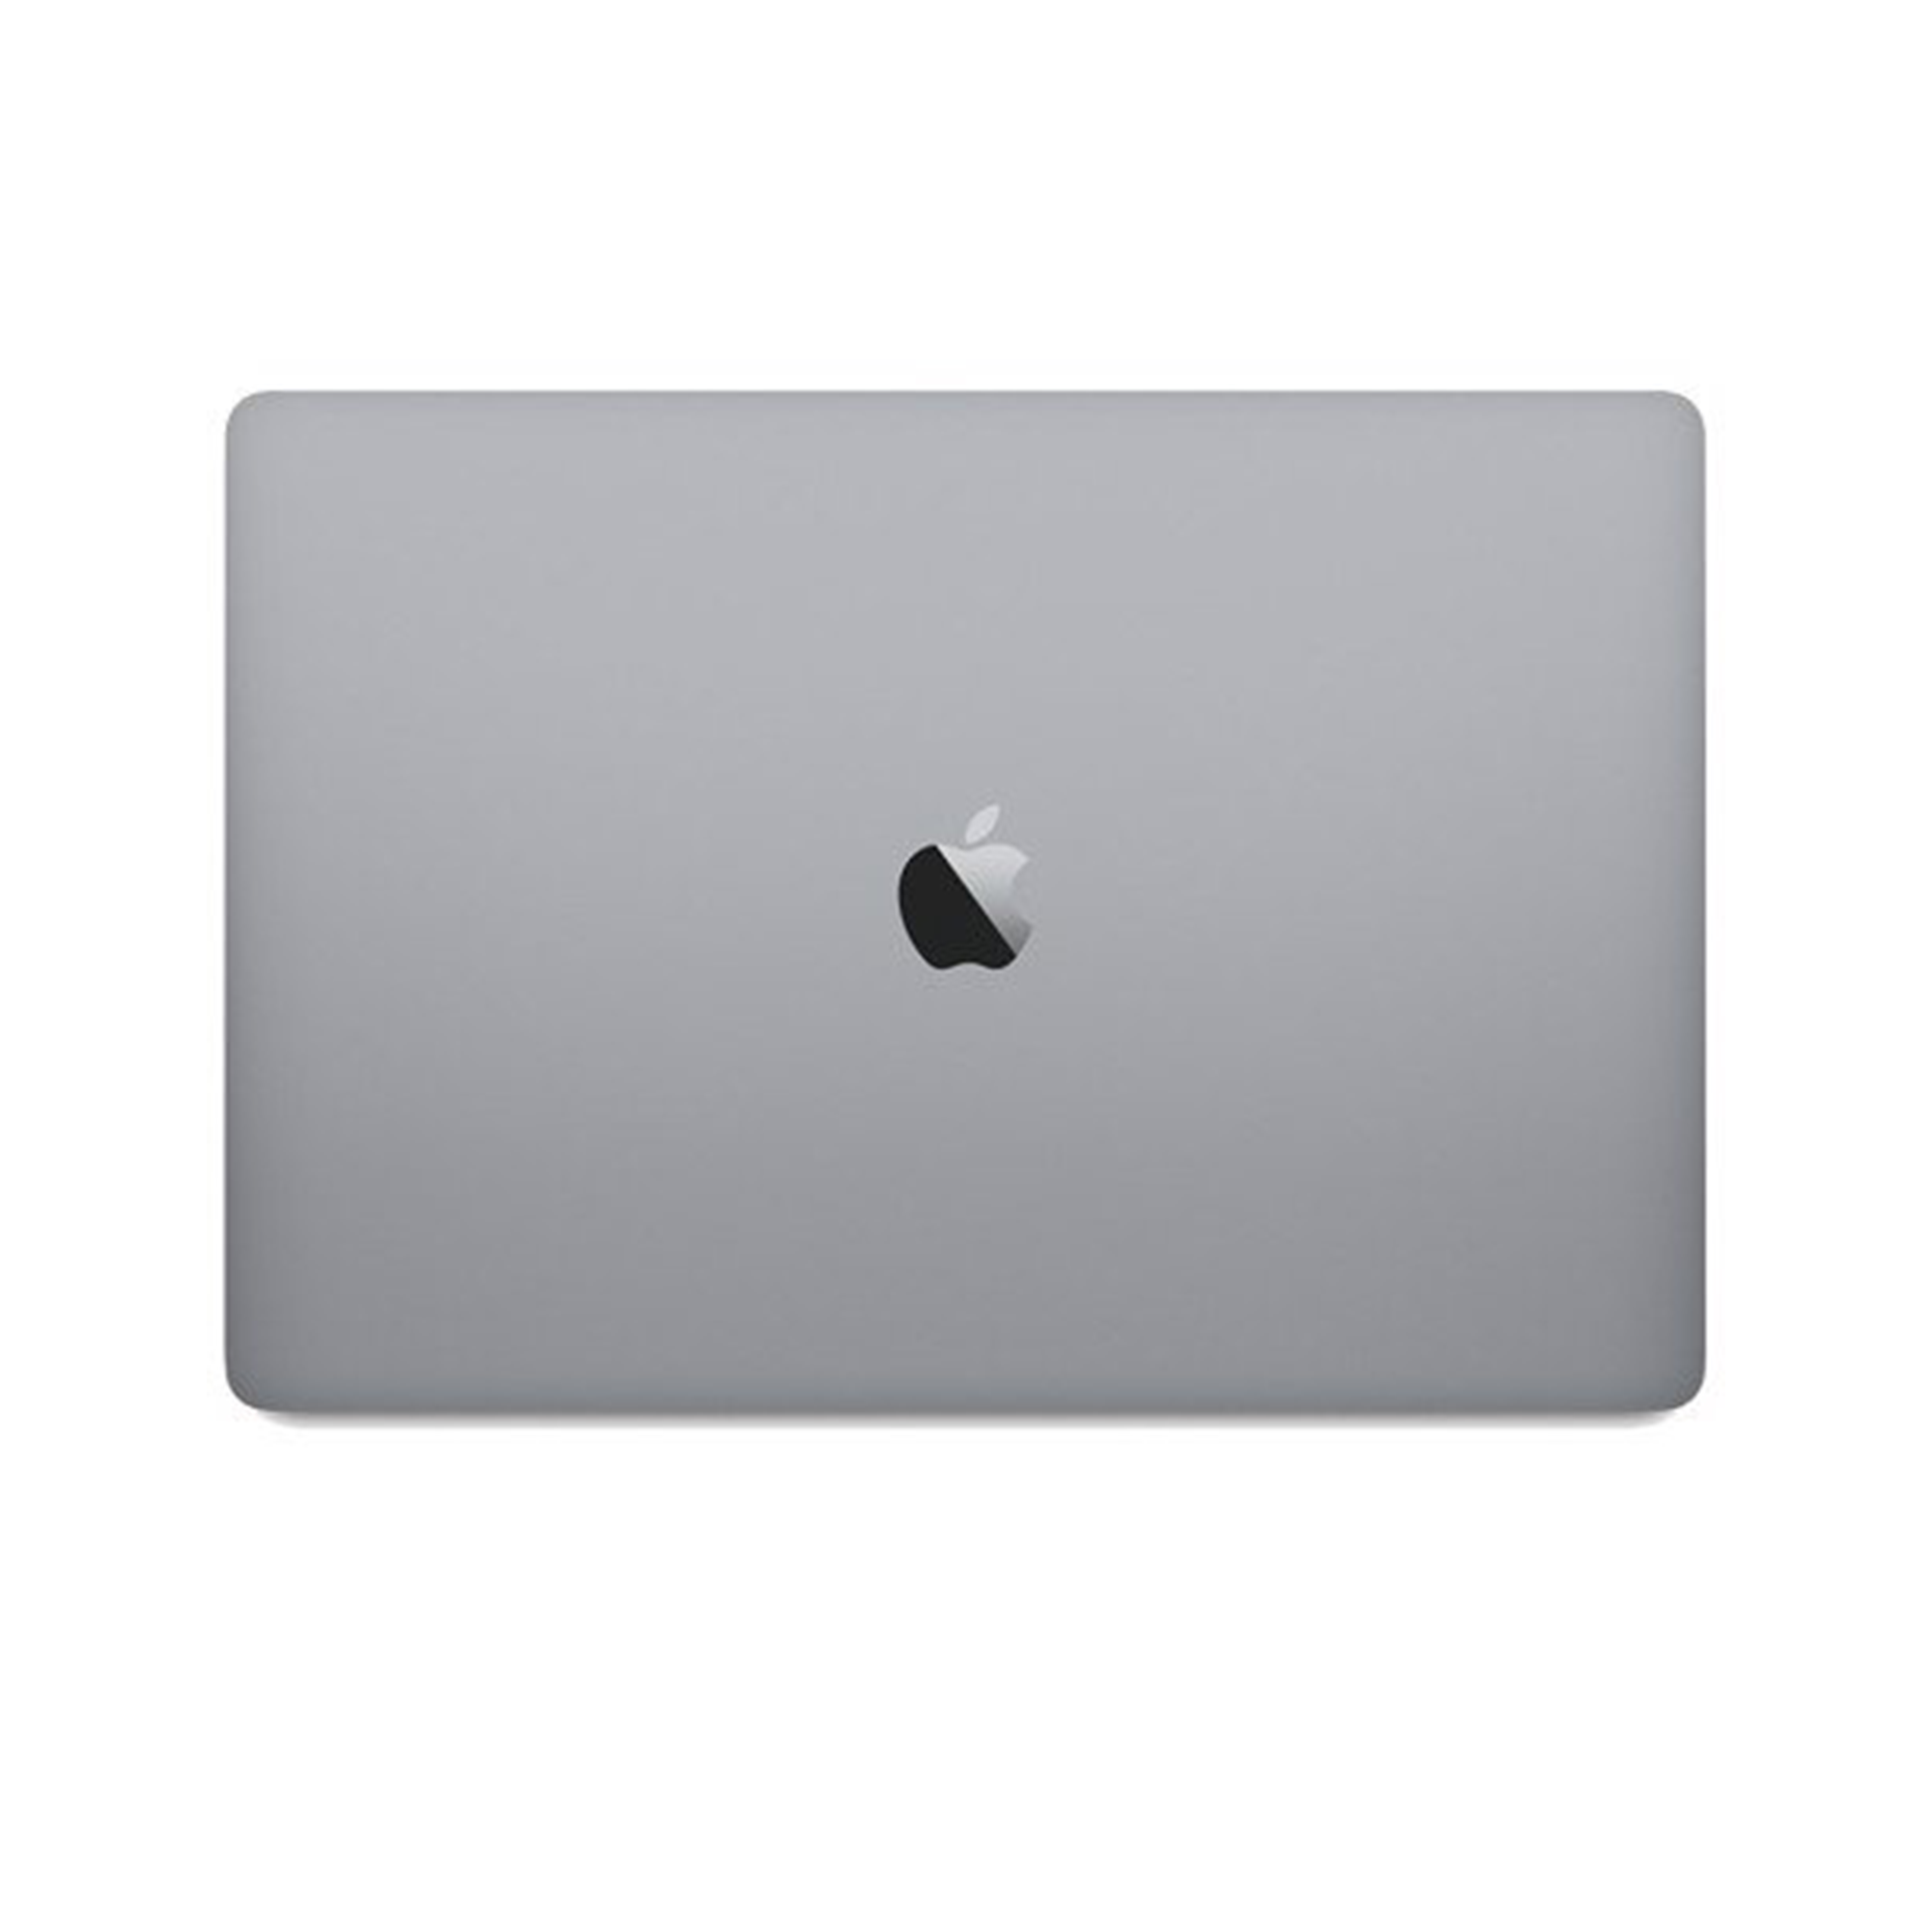 Macbook Pro Retina 16 in 512GB Gray 2019 MVVJ2 (Like New, Kèm Sạc, Full box)